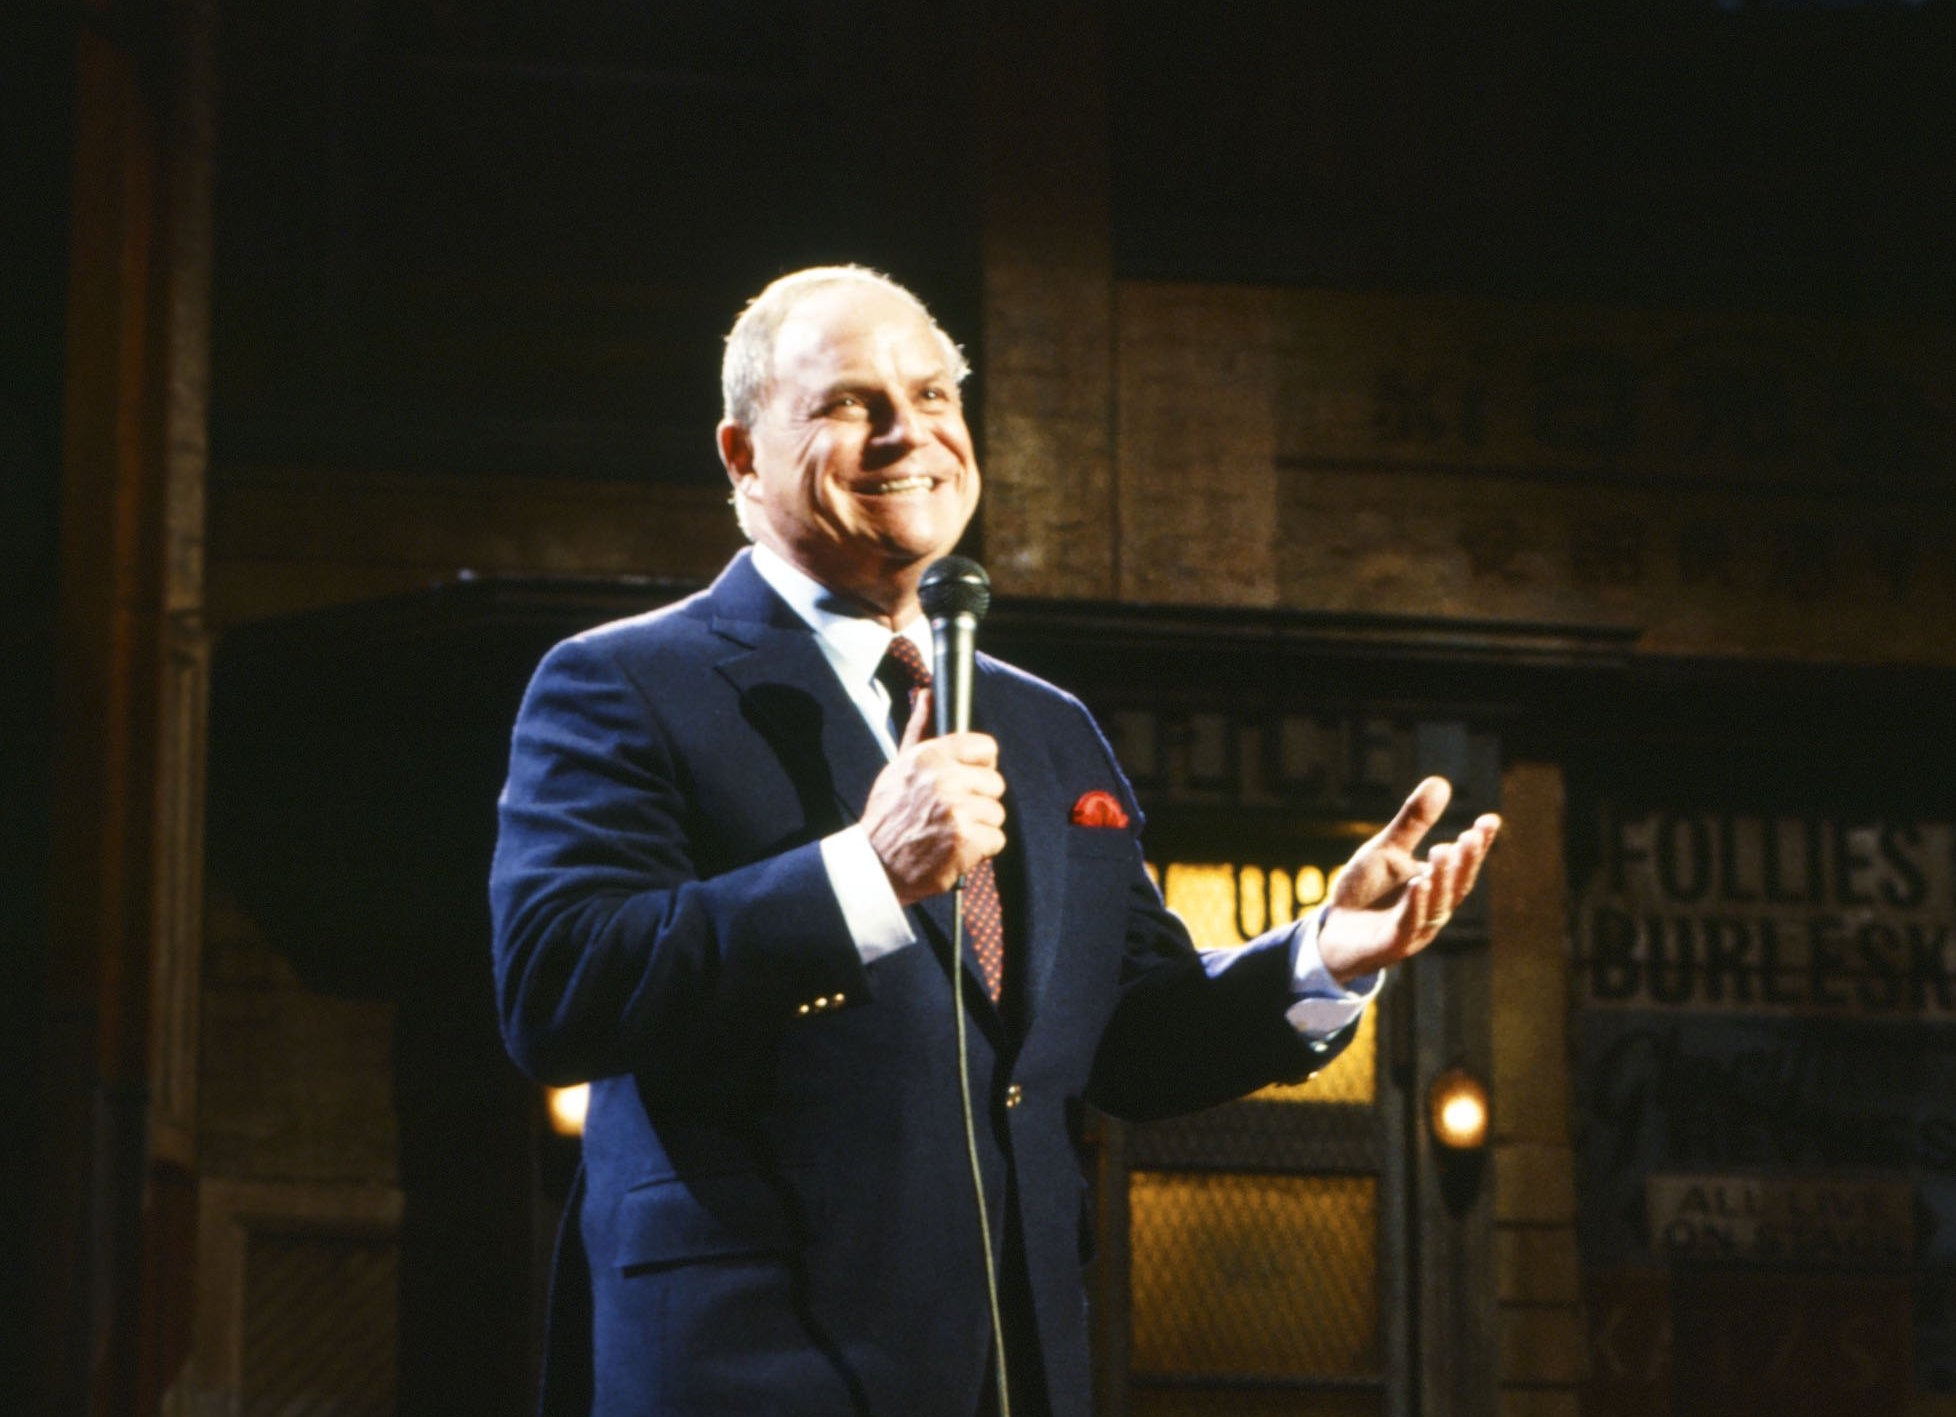 Don Rickles during his Saturday Night Live monologue on Jan. 28, 1984.